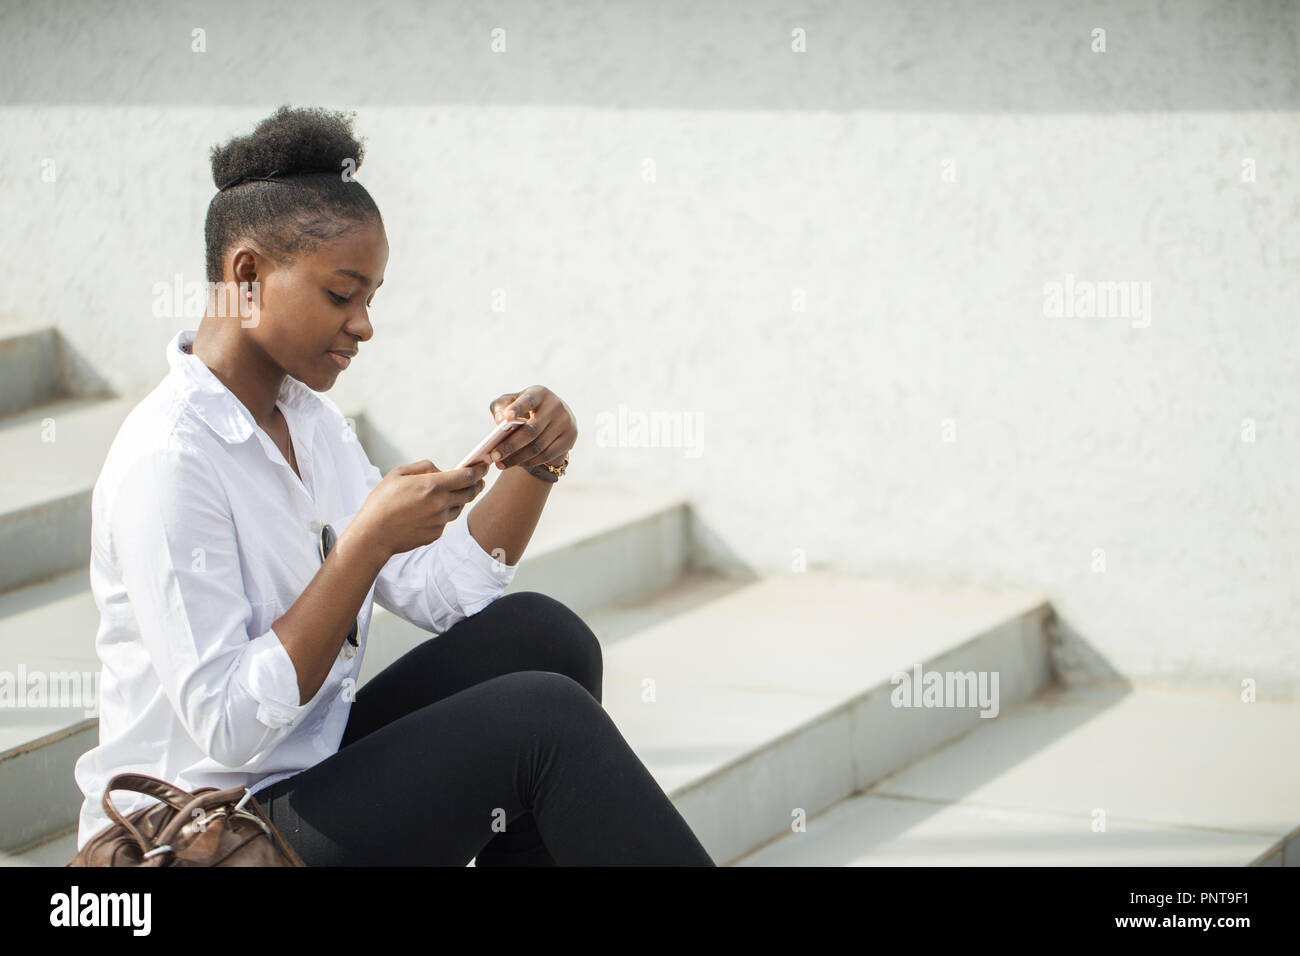 African woman using smart phone while sitting on white stairs outdoors. - Stock Image